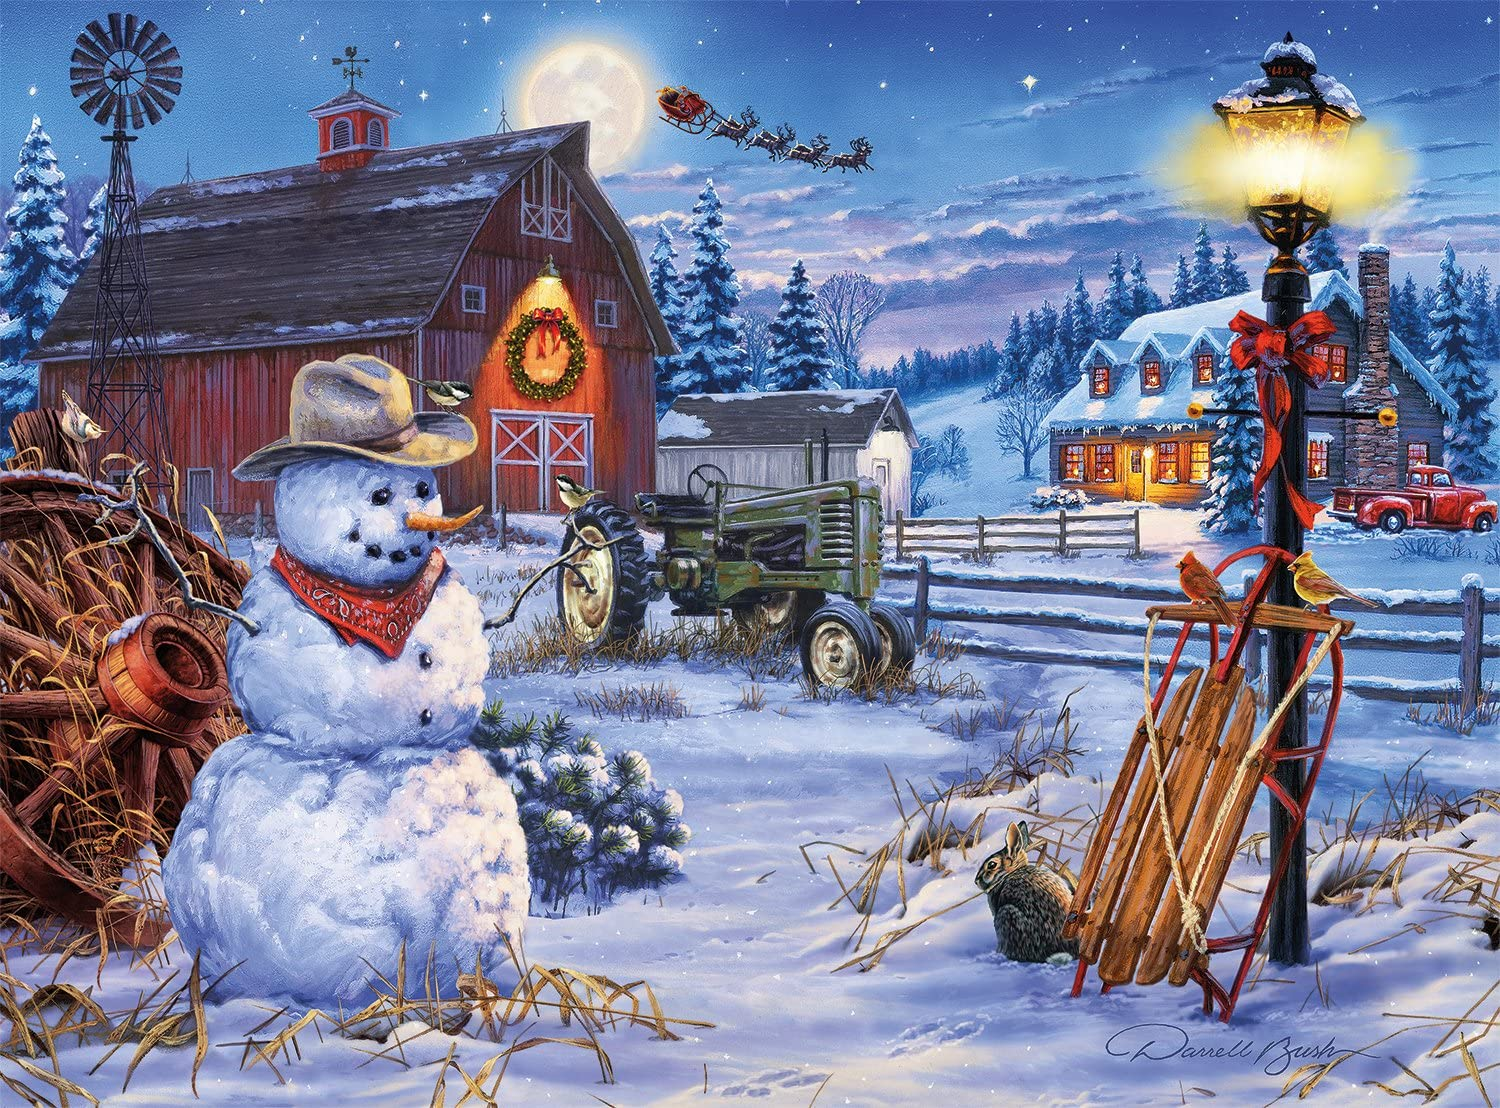 Buffalo Games - Holiday Collection - Darrell Bush - Country Christmas - 1000 Piece Jigsaw Puzzle